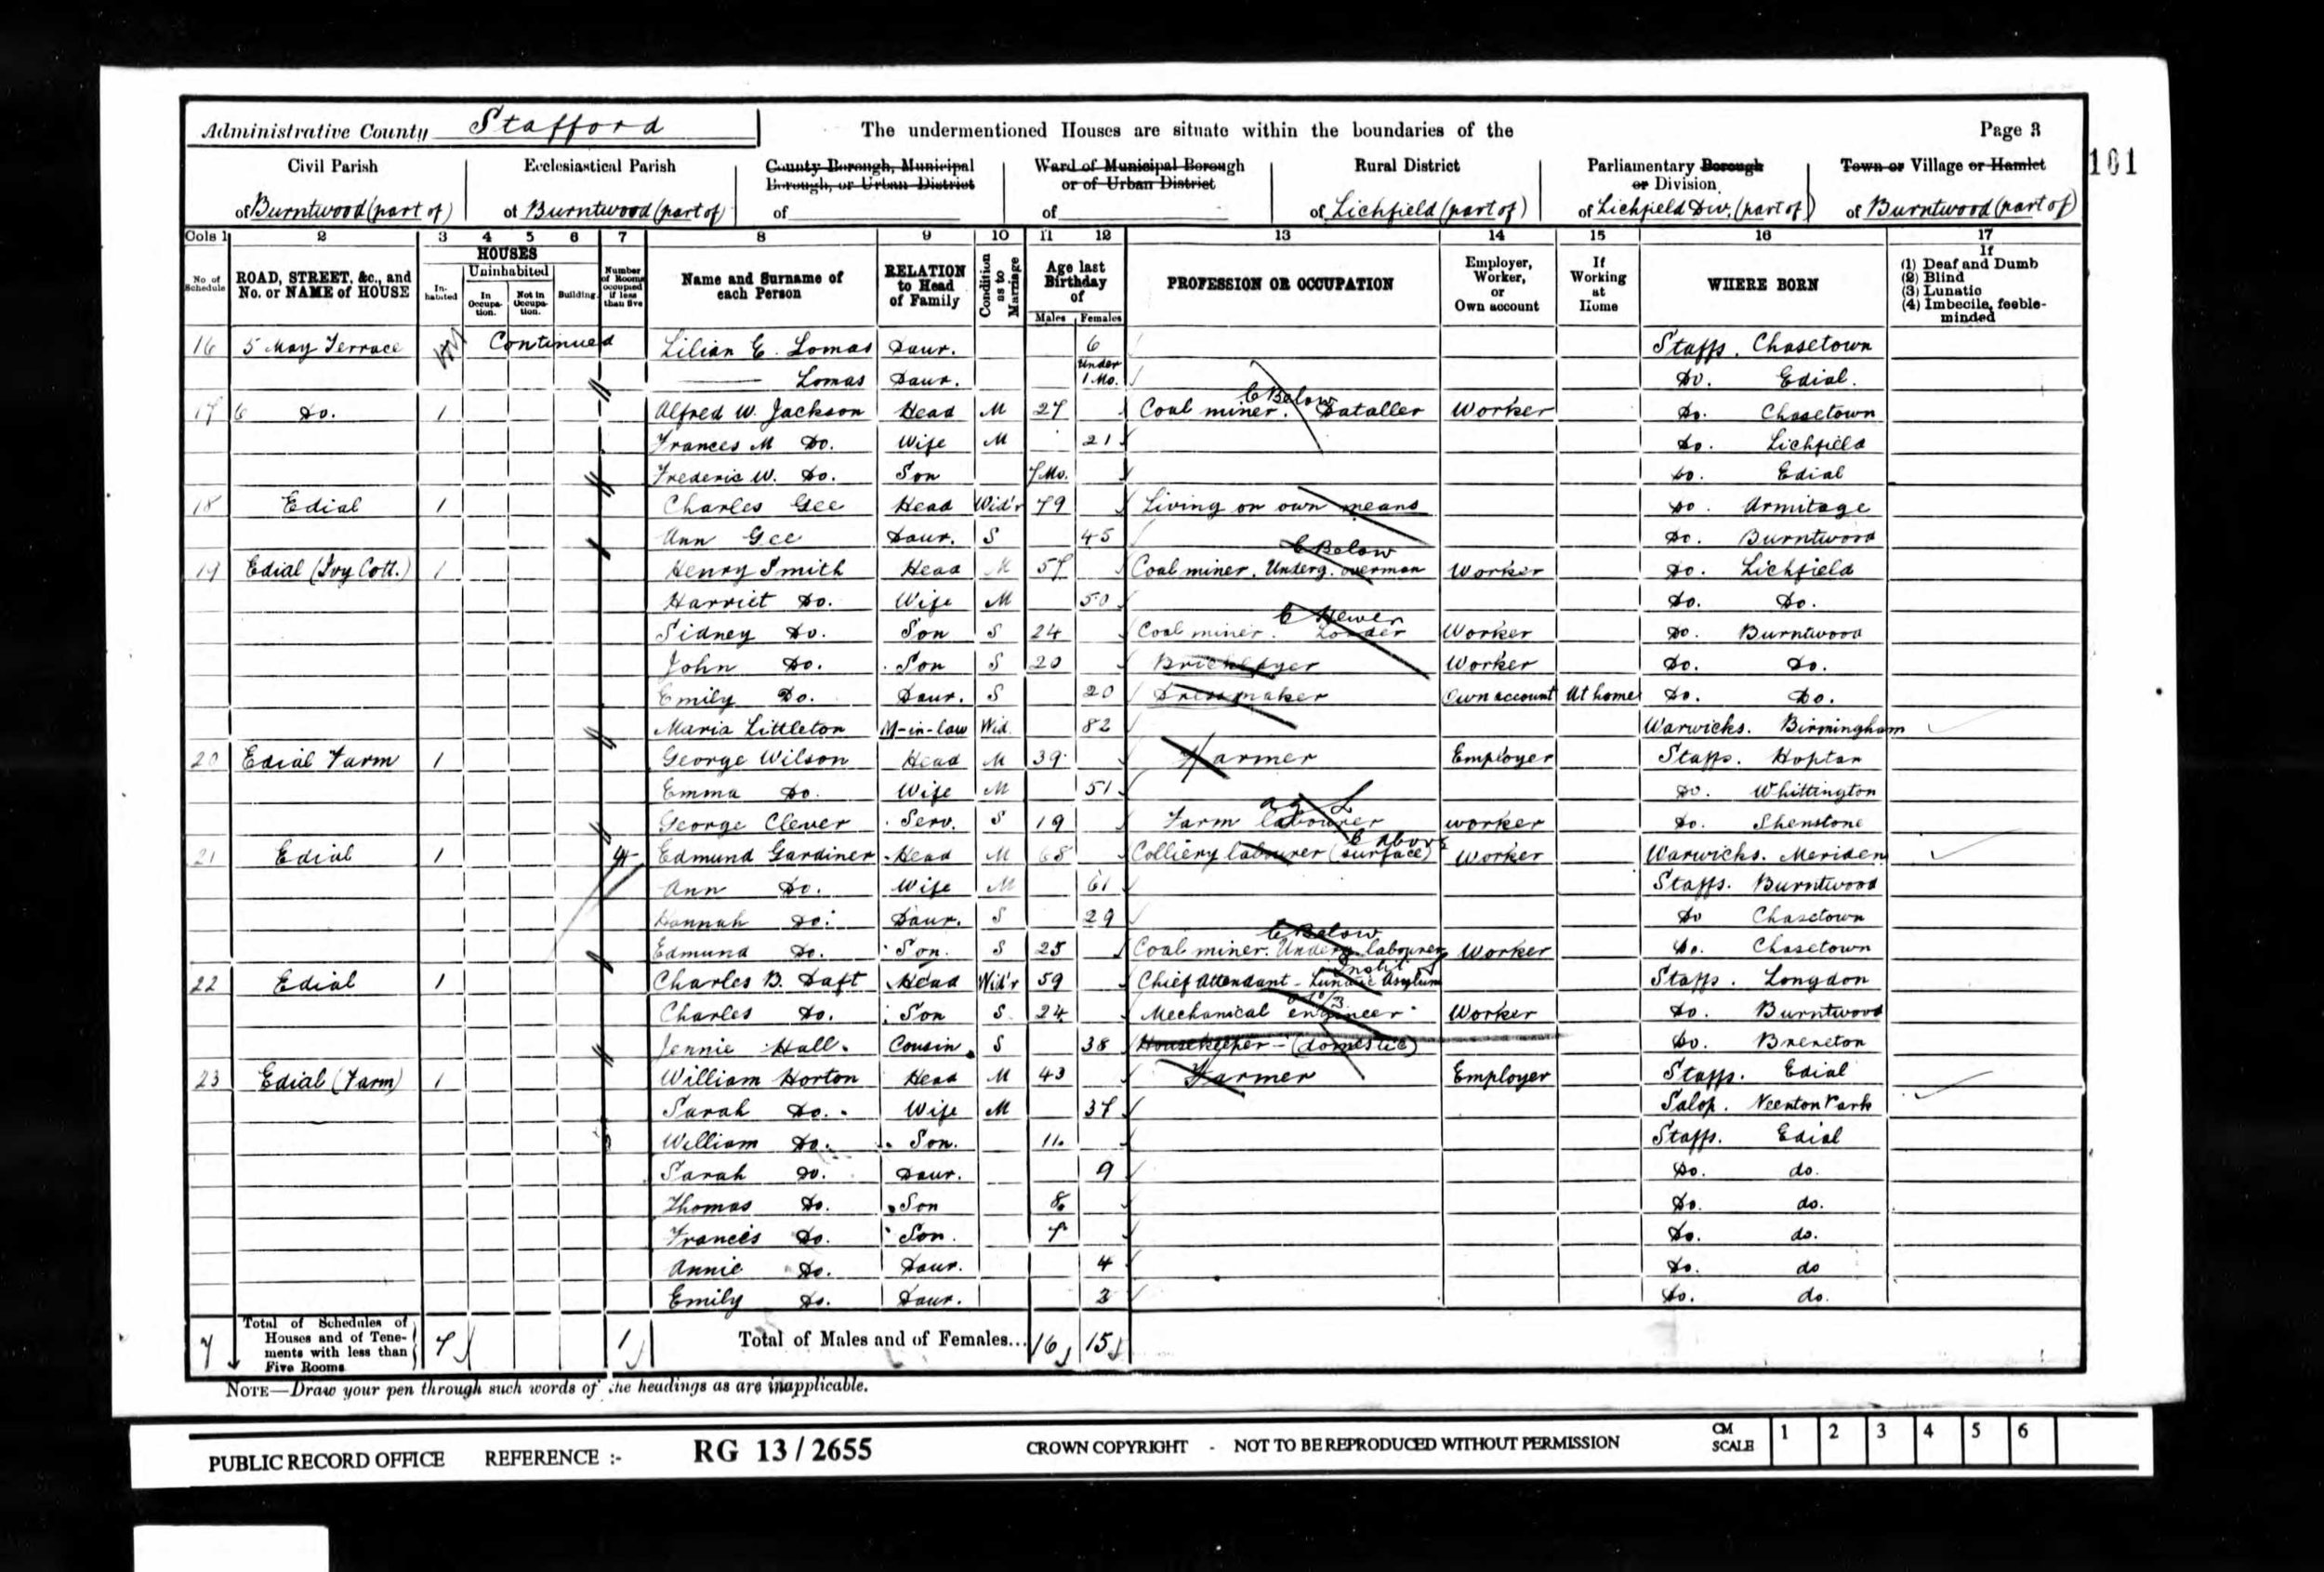 Extract from the 1901 census